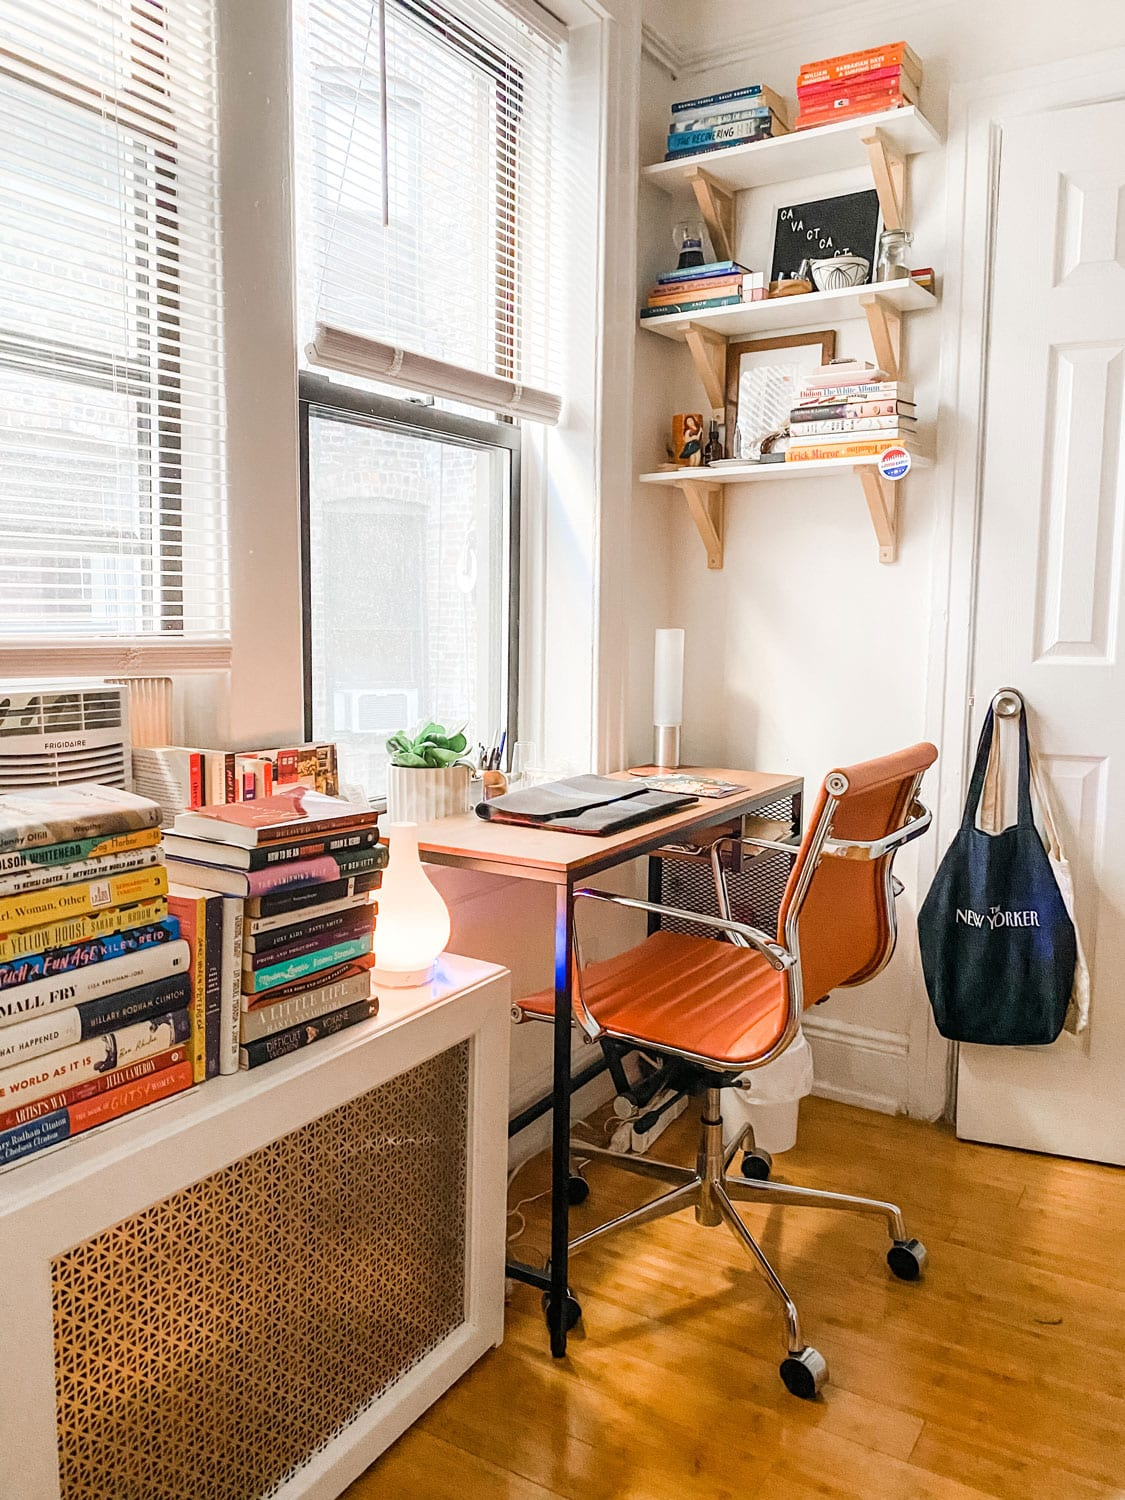 small desk with orange leather desk chair in a New York city apartment